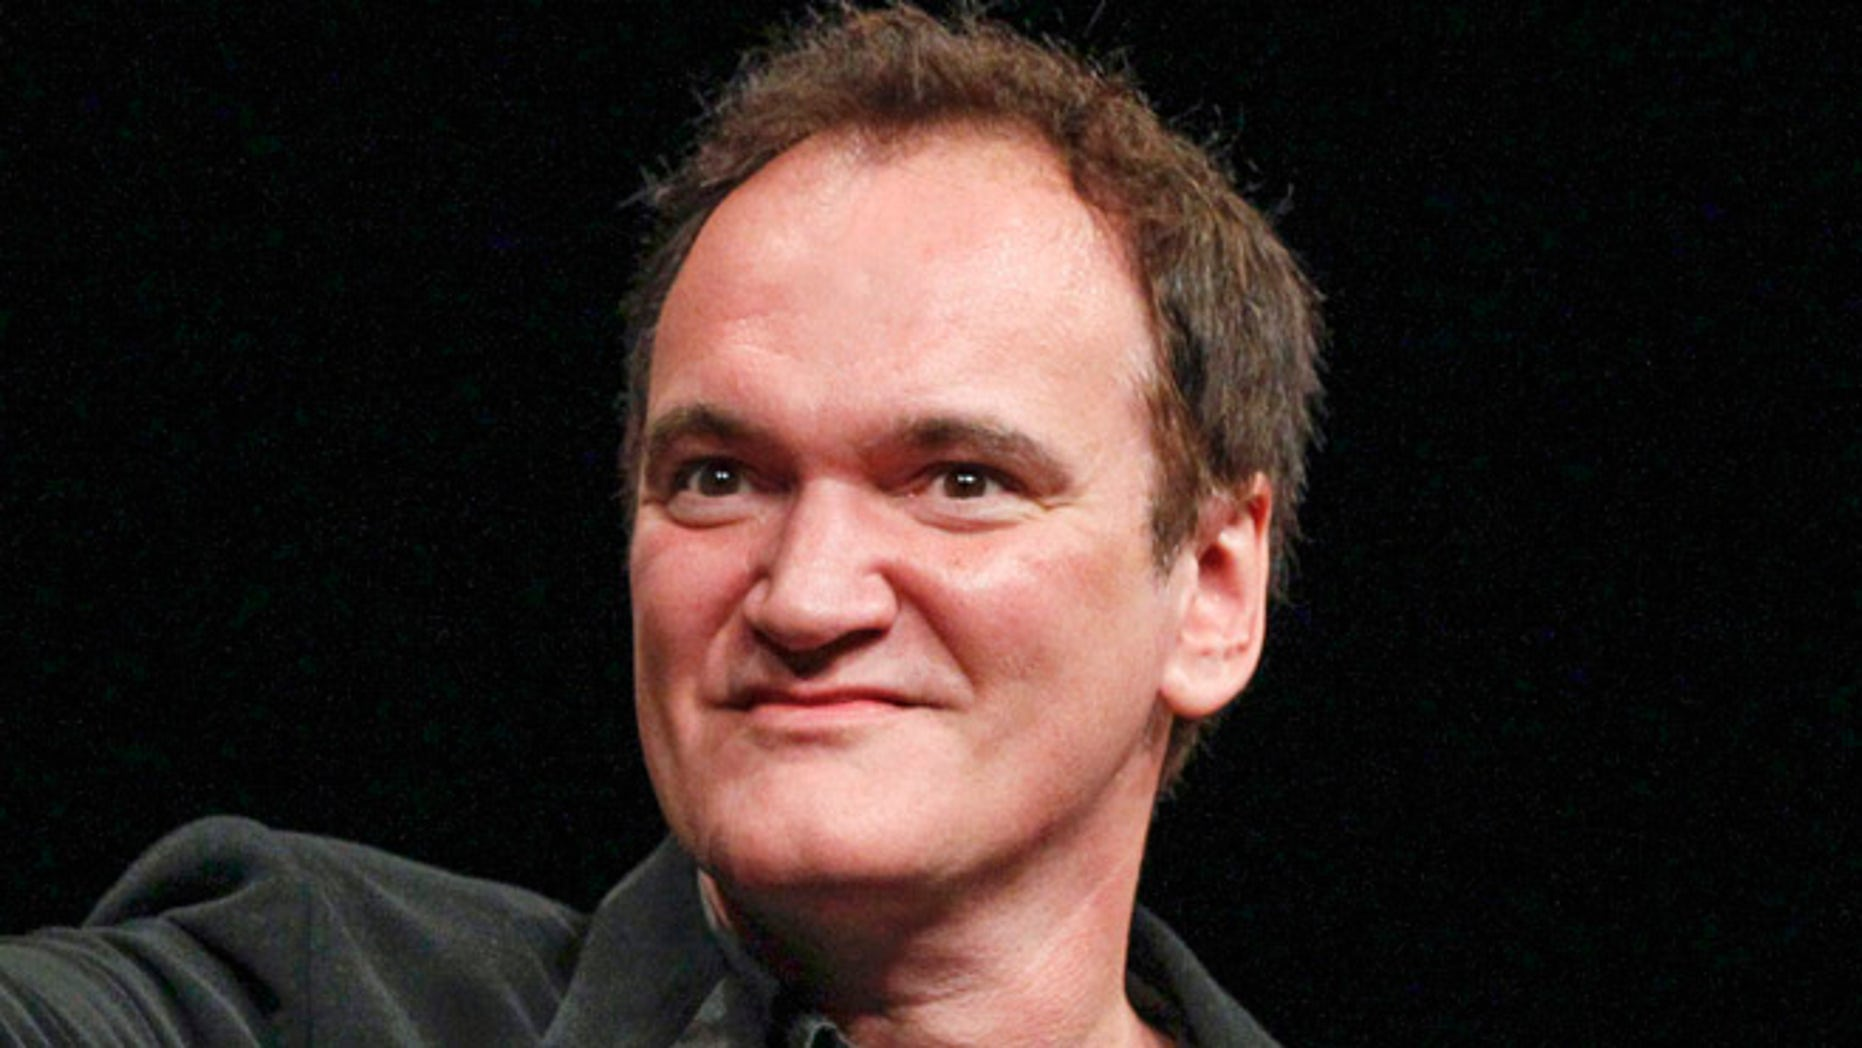 U.S. director Quentin Tarantino gestures after receiving the Prix Lumiere award during a ceremony at the 5th Festival Lumiere in Lyon, October 18, 2013.  REUTERS/Robert Pratta(FRANCE - Tags: ENTERTAINMENT PROFILE) - RTX14GB8